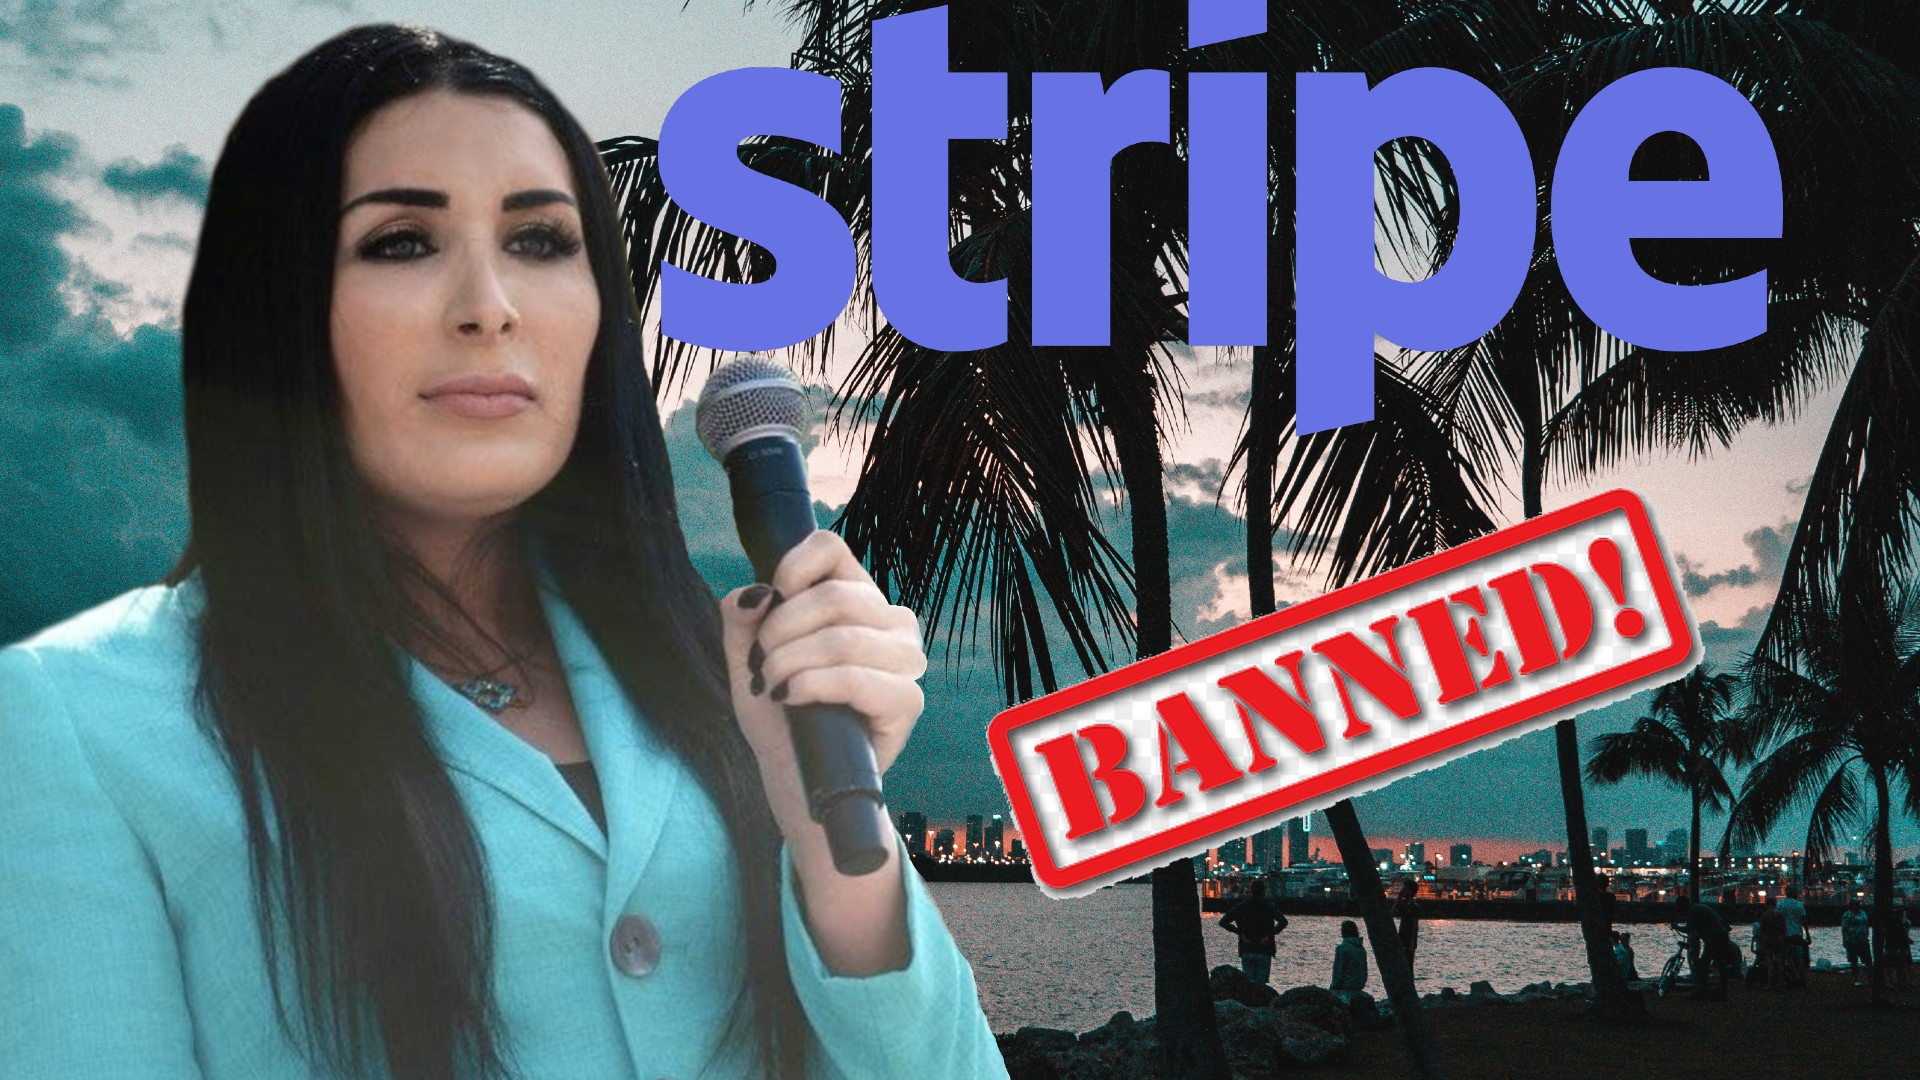 Congressional Candidate Laura Loomer Banned From Payment Processing Company Stripe